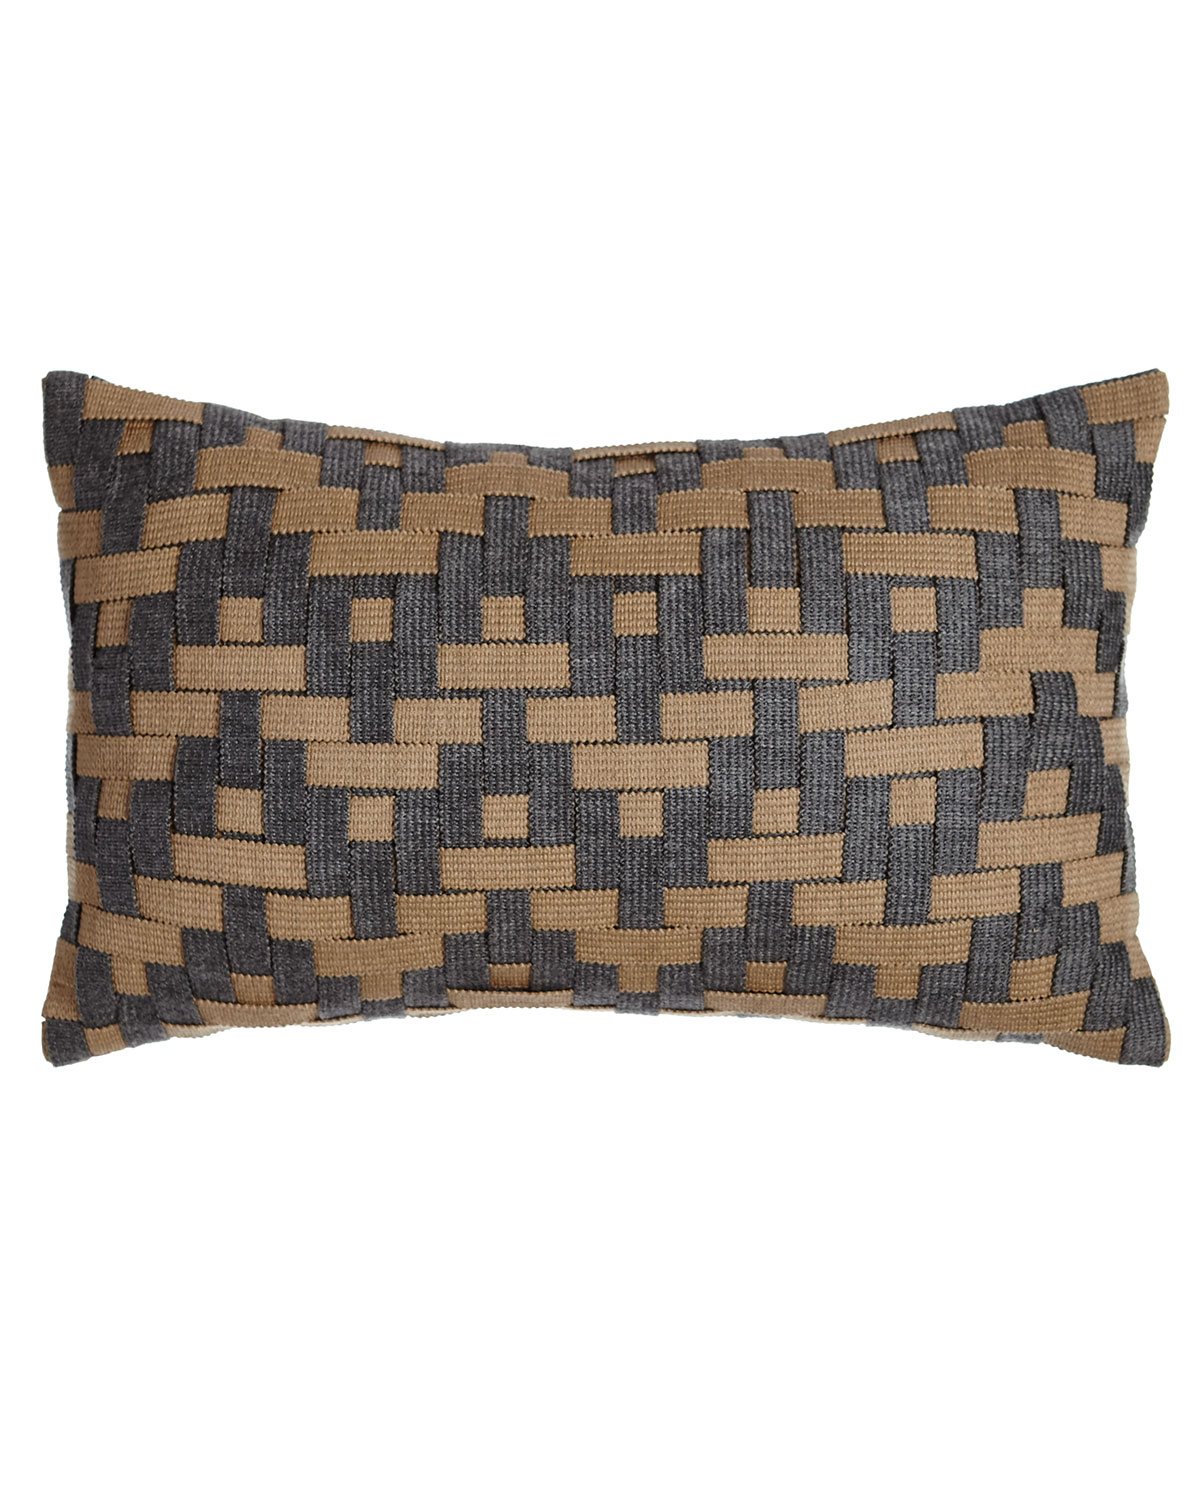 Elaine Smith Smoky Basketweave Outdoor Pillow Neiman Marcus